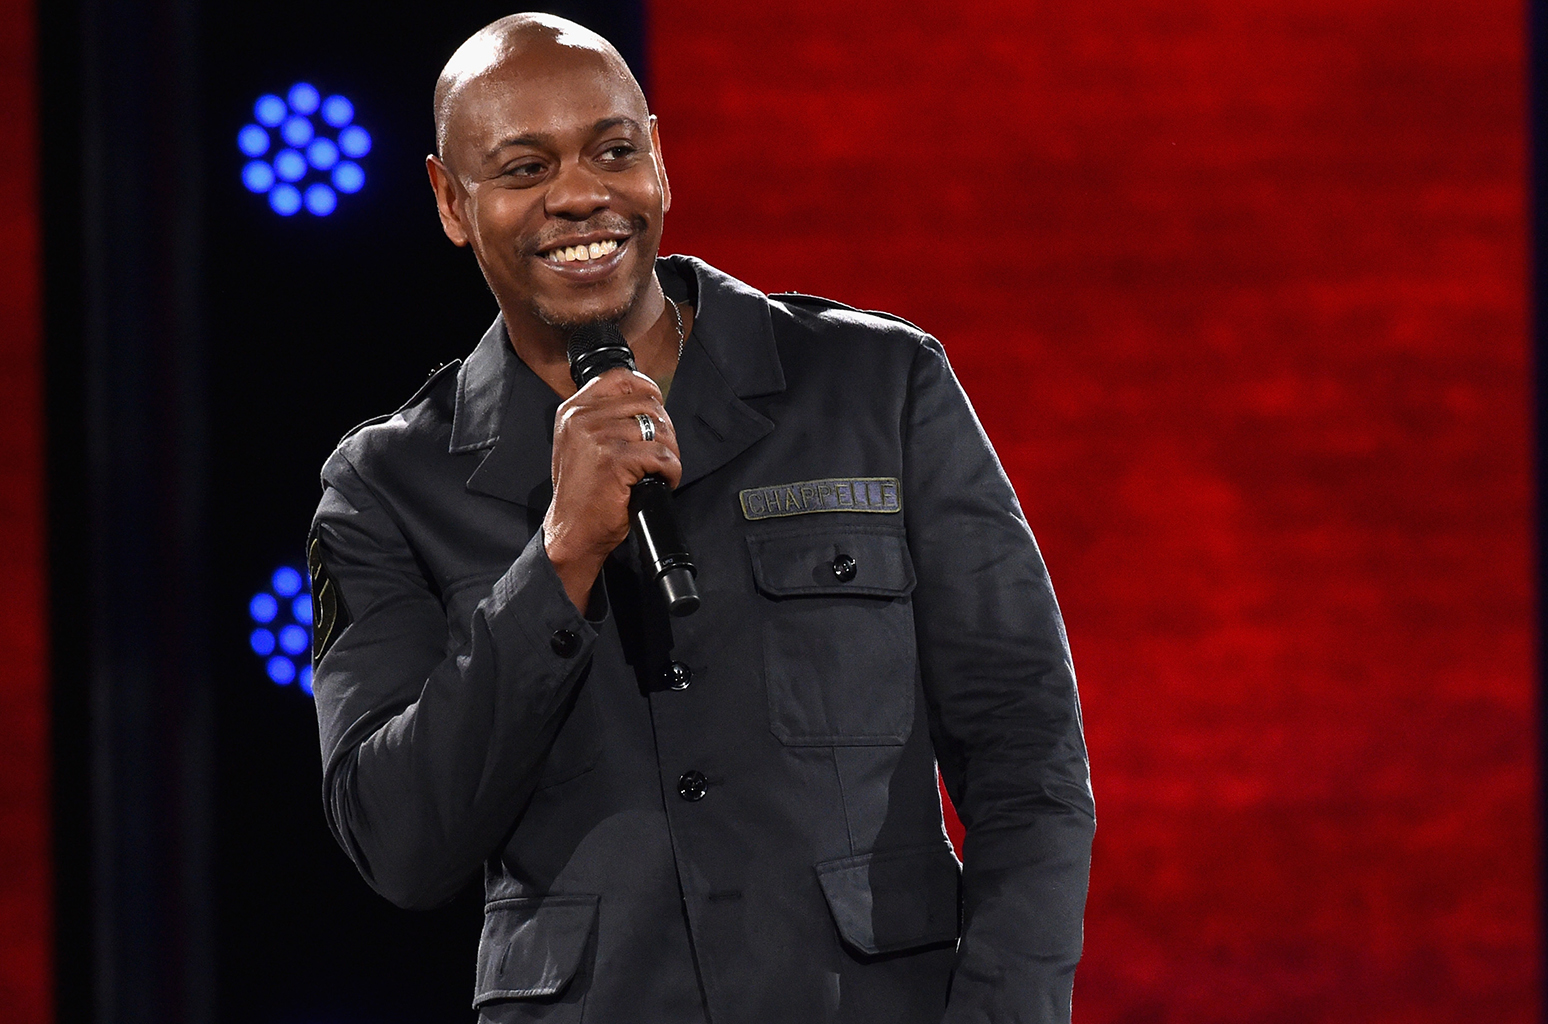 Dave Chappelle jokes about ISIS, OJ Simpson in new Netflix trailer